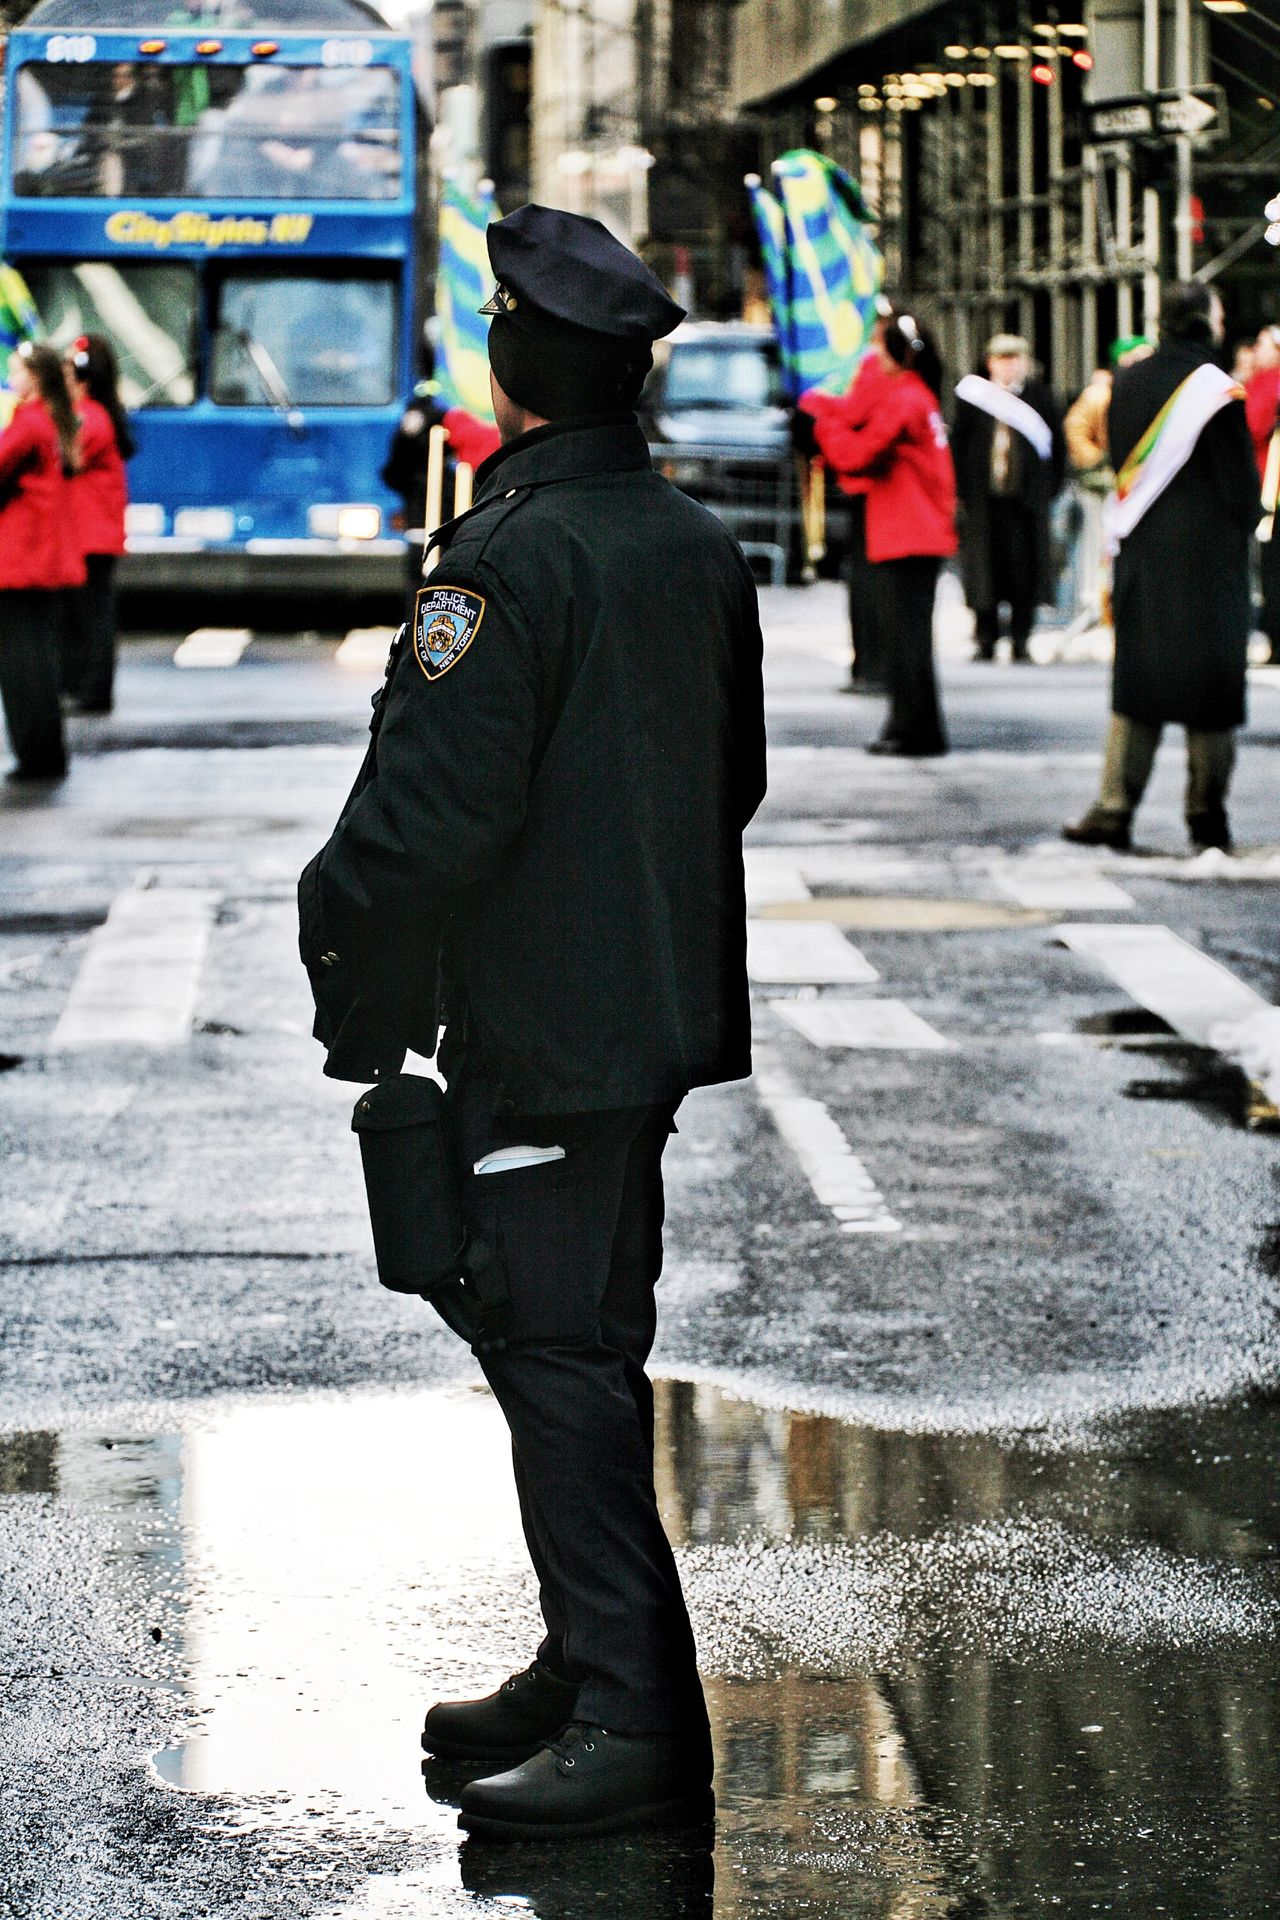 Police Policeman Law Enforcement NYPD NYC NYC Photography NYC Street Photography Reflection Reflections Reflection_collection St Patrick's Day Streetphotography Street Street Photography Manhattan Police Parade Parade Time Public Transportation Fresh On Eyeem  People In Places